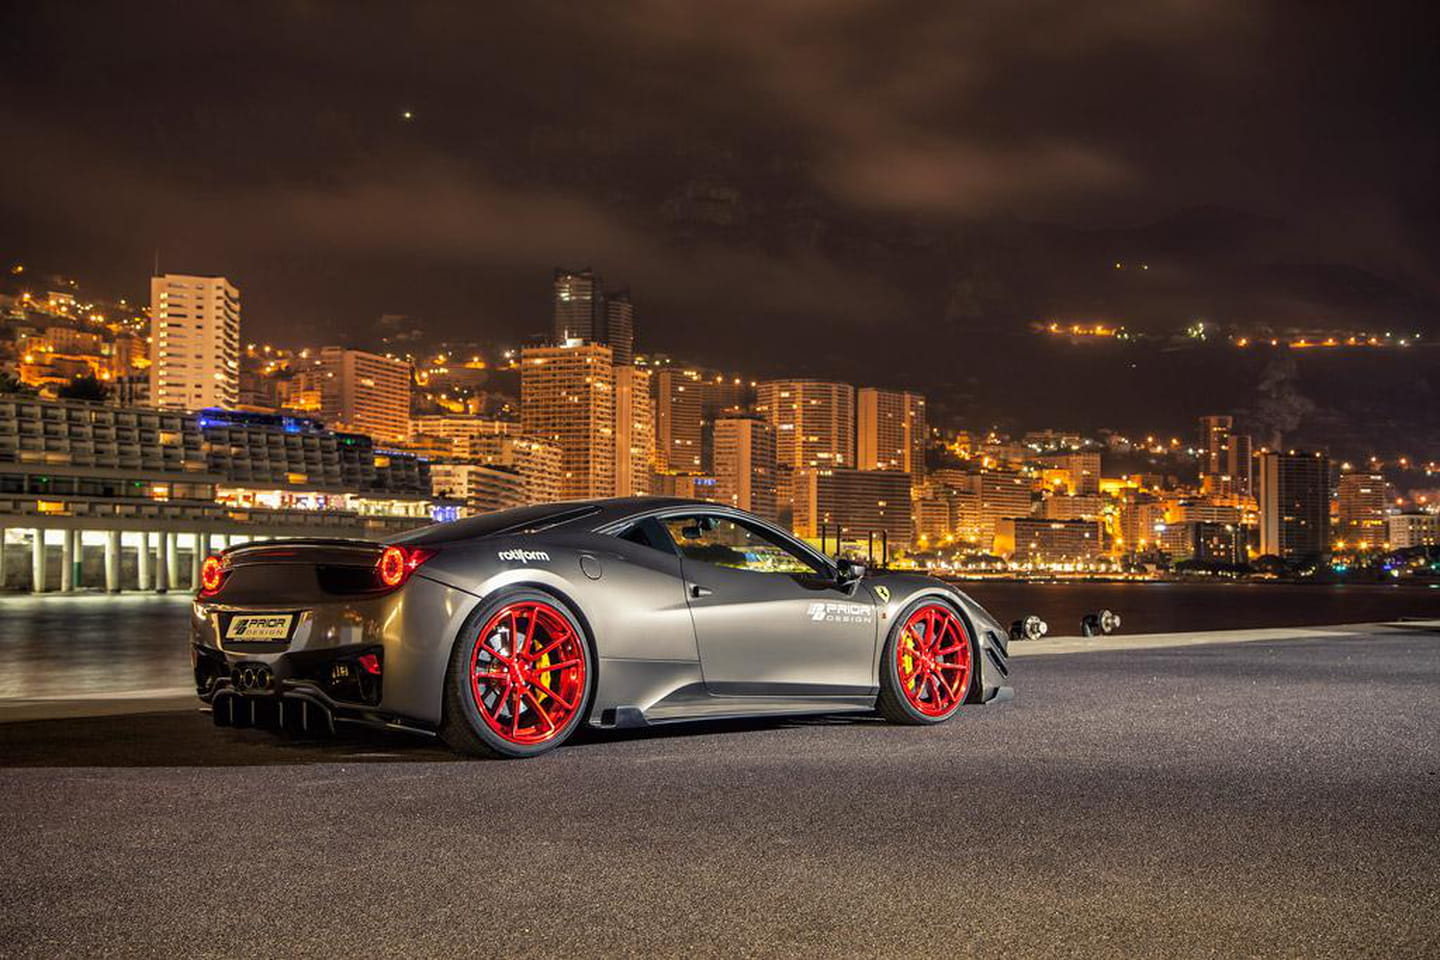 ferrari_458_tuning_prior_design_DM_6